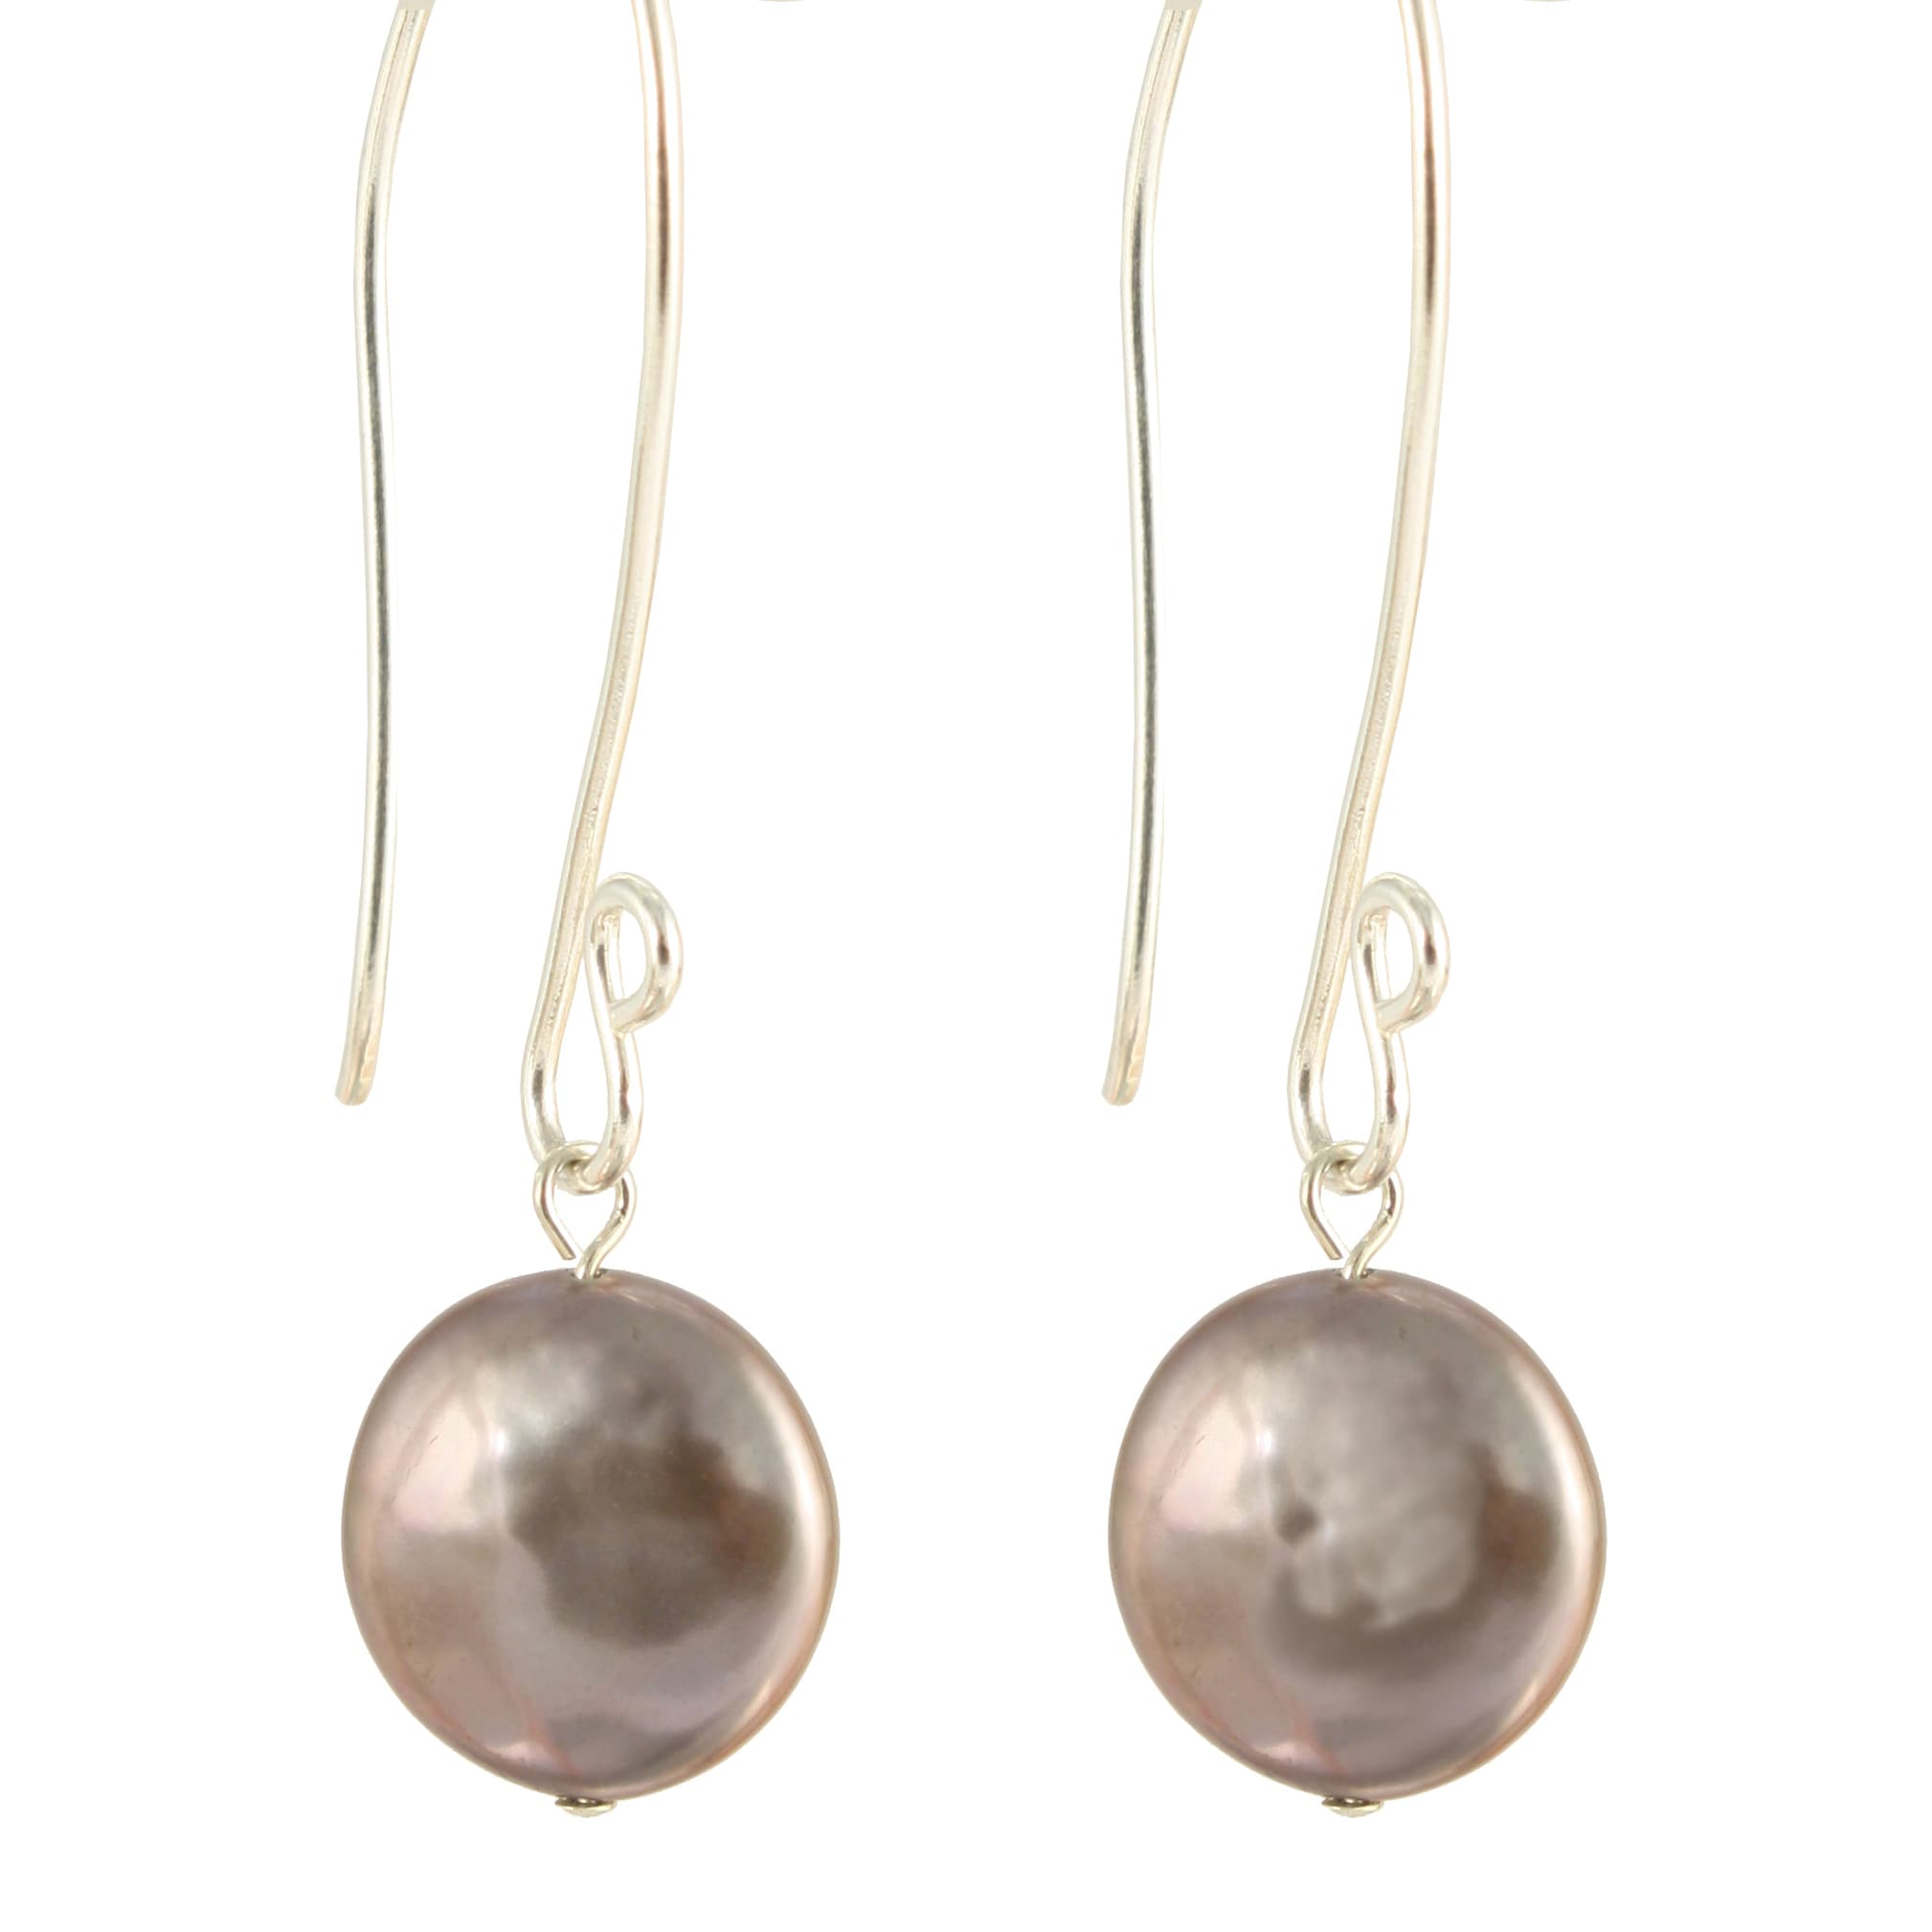 brass elements earrings silpada drop jewelry pearl sterling freshwater and silver convertible interchangeable